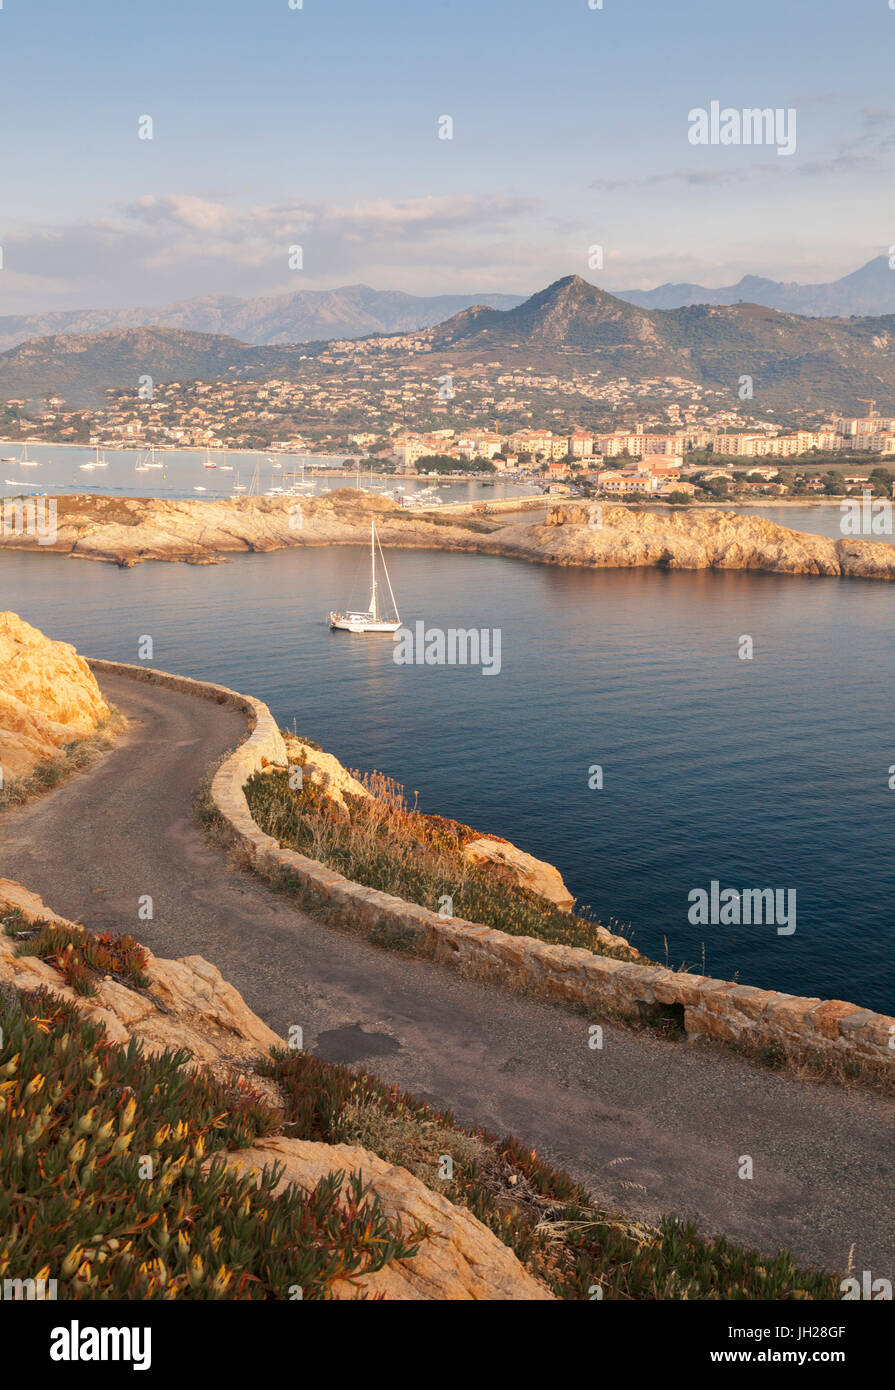 A sail boat in the clear sea around the village of Ile Rousse at sunset, Balagne Region, Corsica, France, Mediterranean, - Stock Image